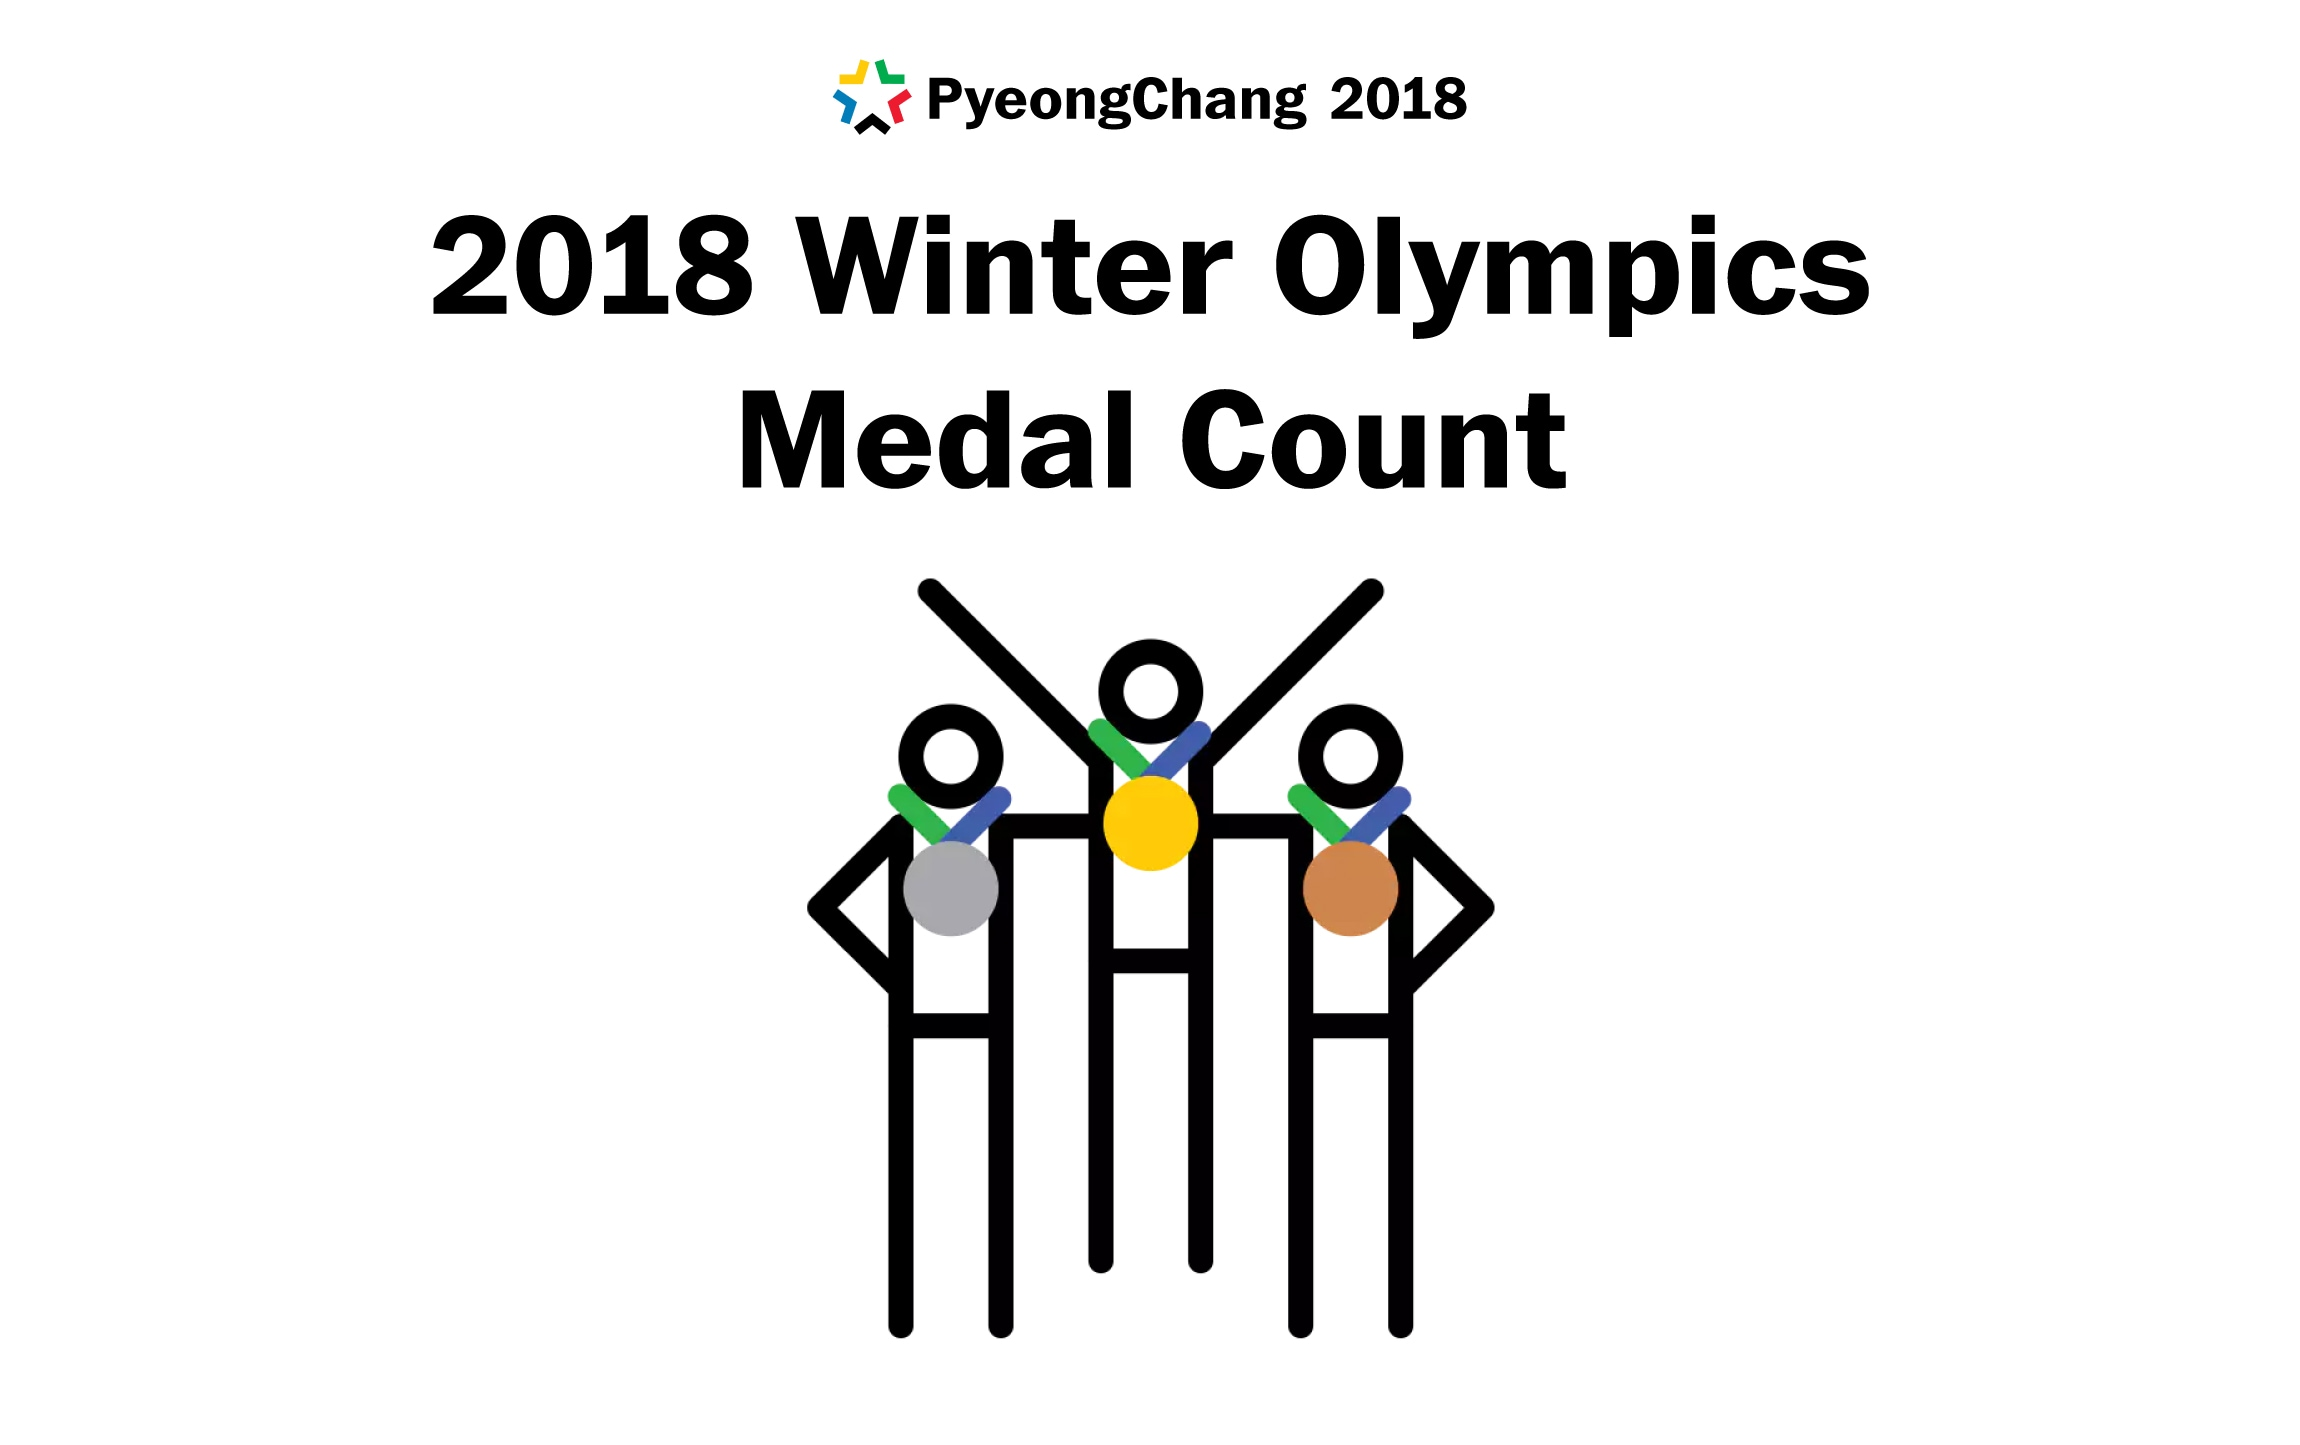 Medal counts for the 2018 Winter Olympics in South Korea